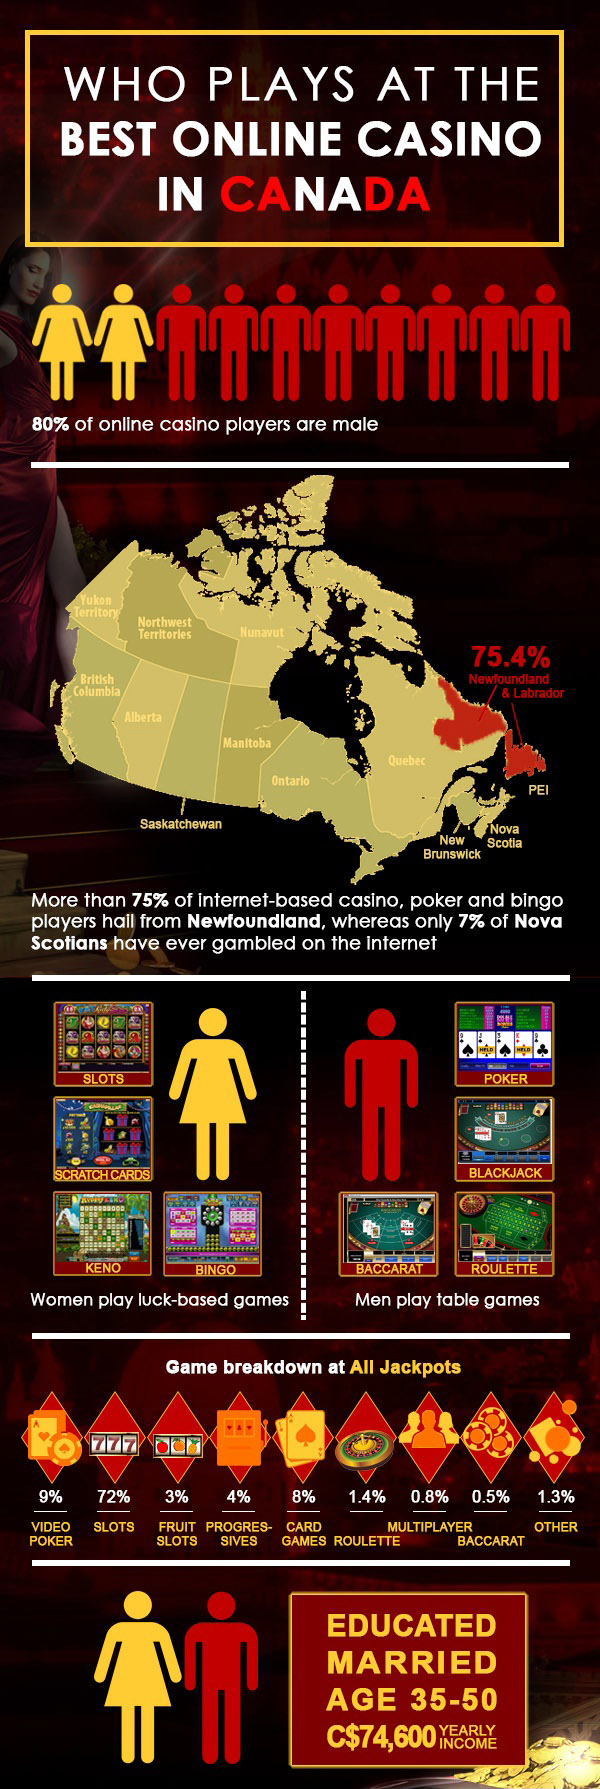 Who Plays at the Online Casino in Canada and Why - Infografic